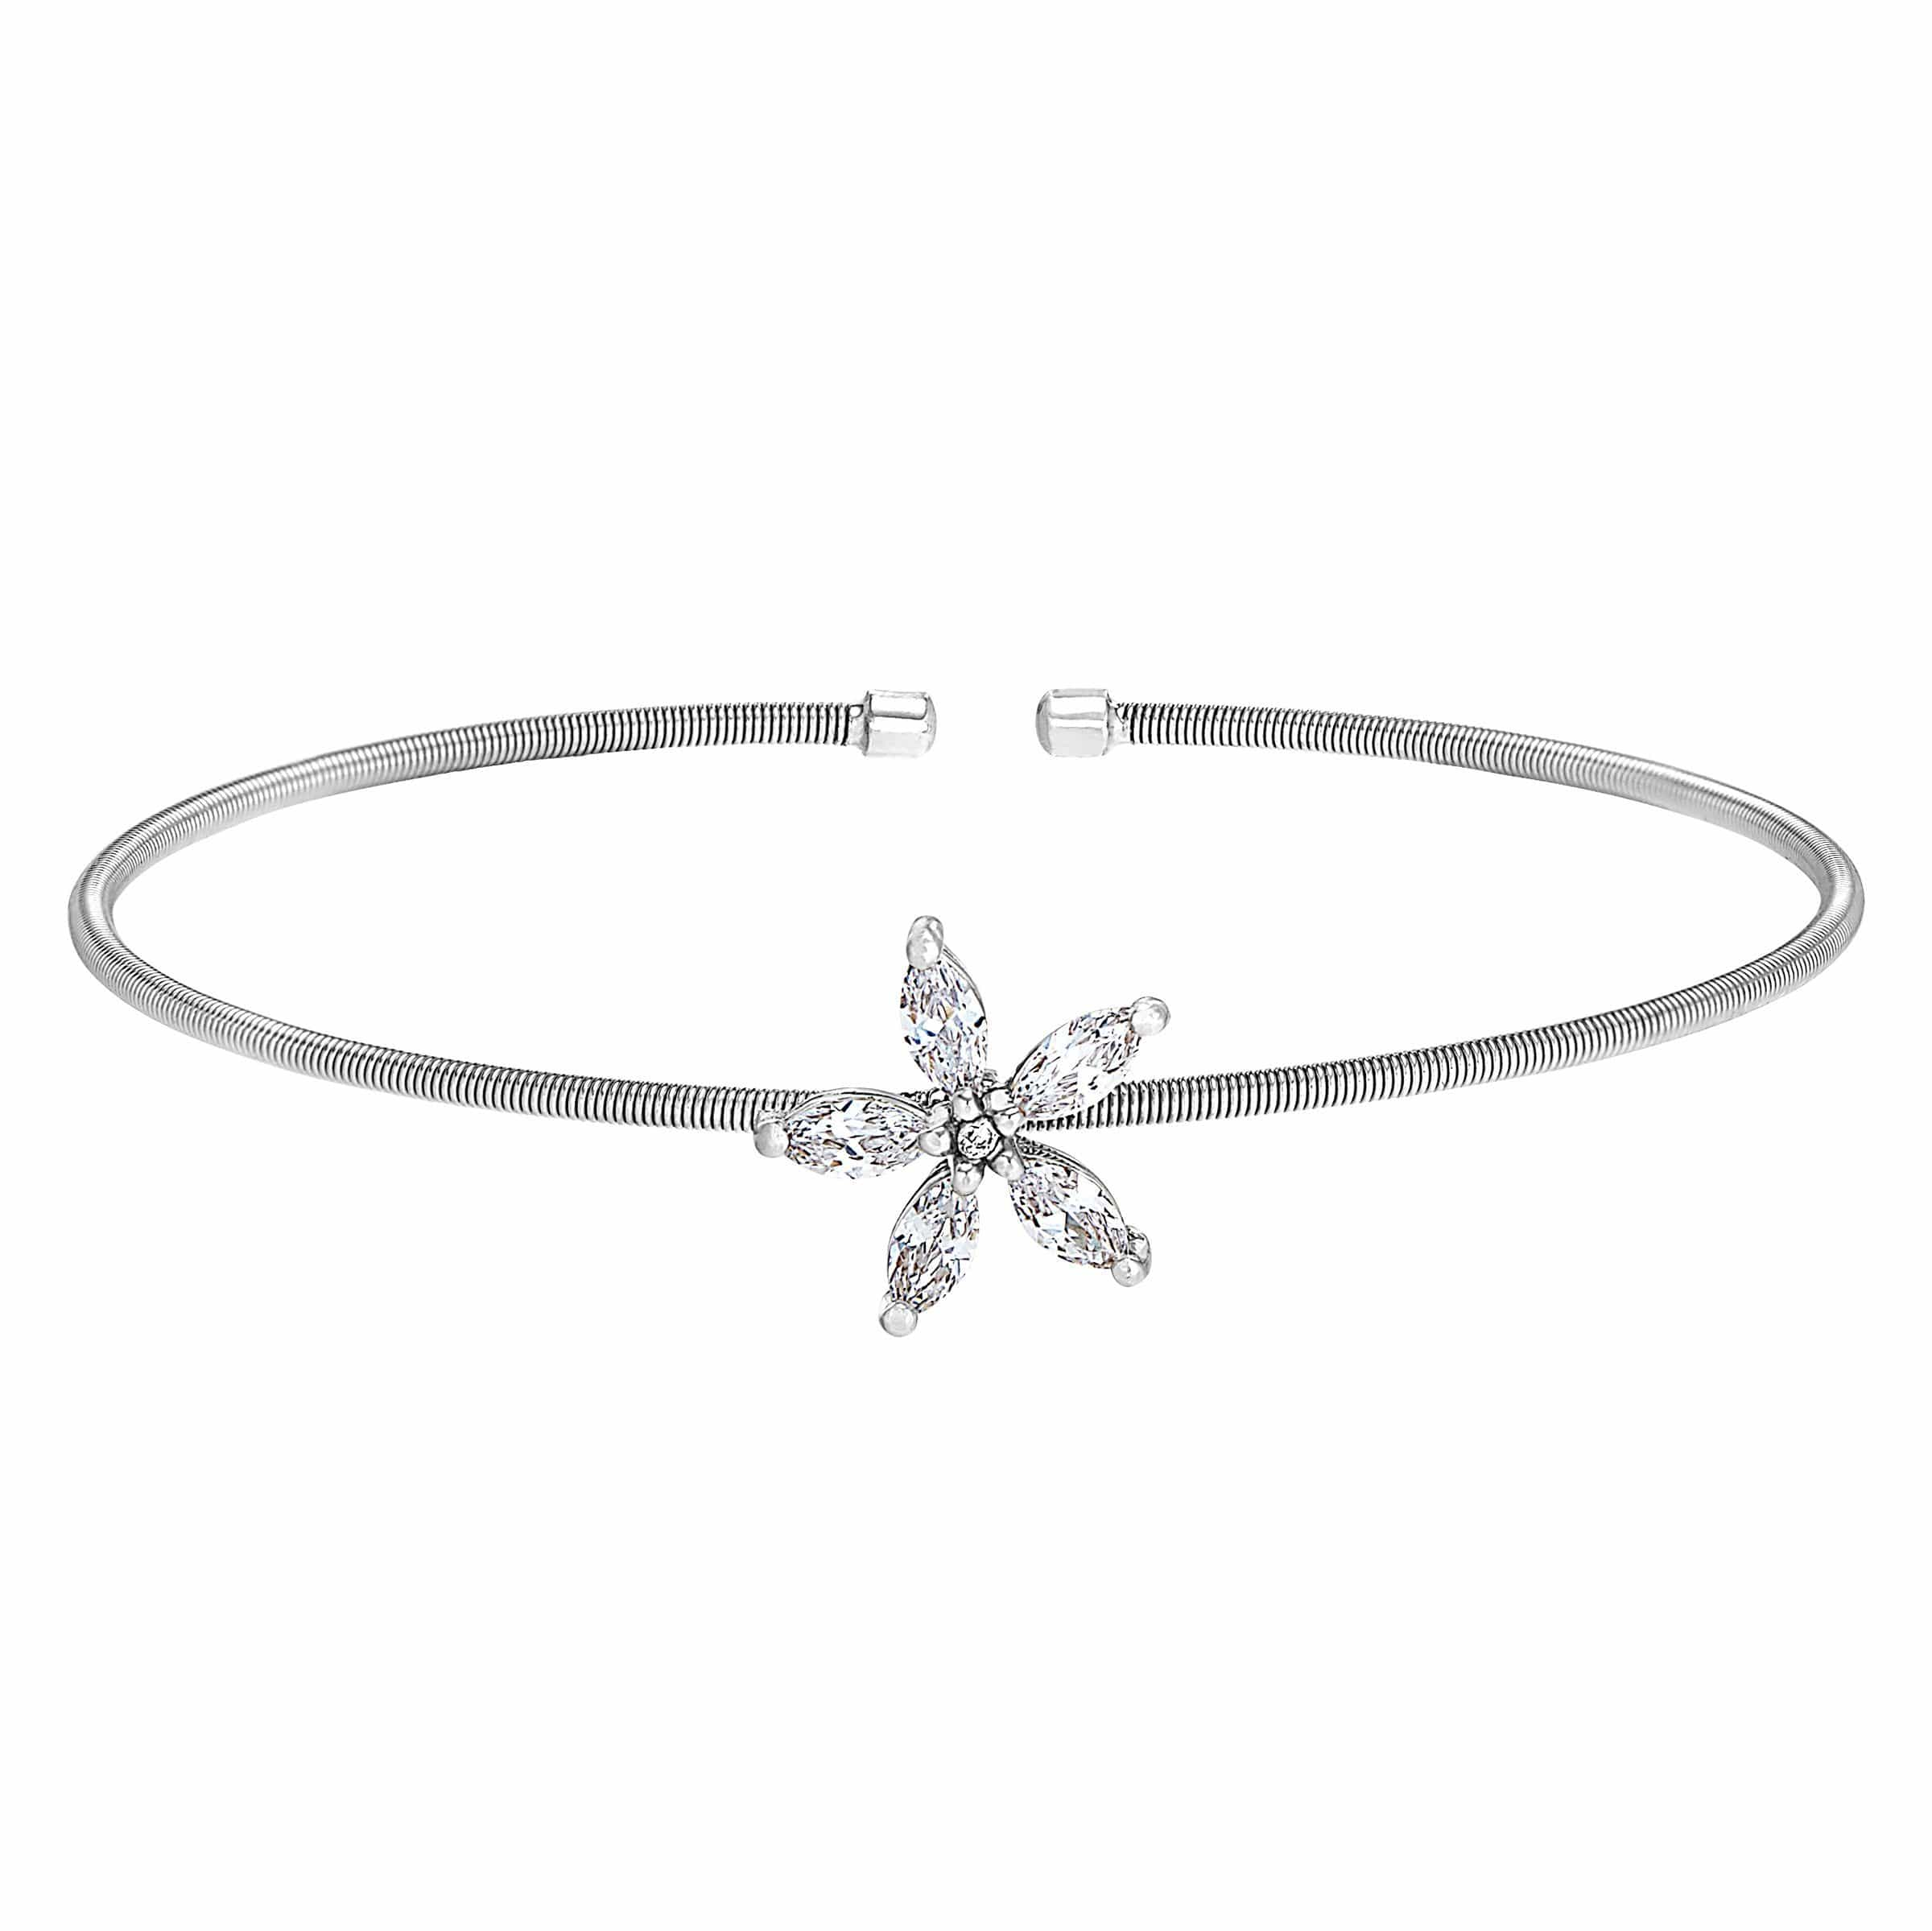 Rhodium Finish Sterling Silver Cable Cuff Flower Bracelet - LL7084B-RH-Kelly Waters-Renee Taylor Gallery